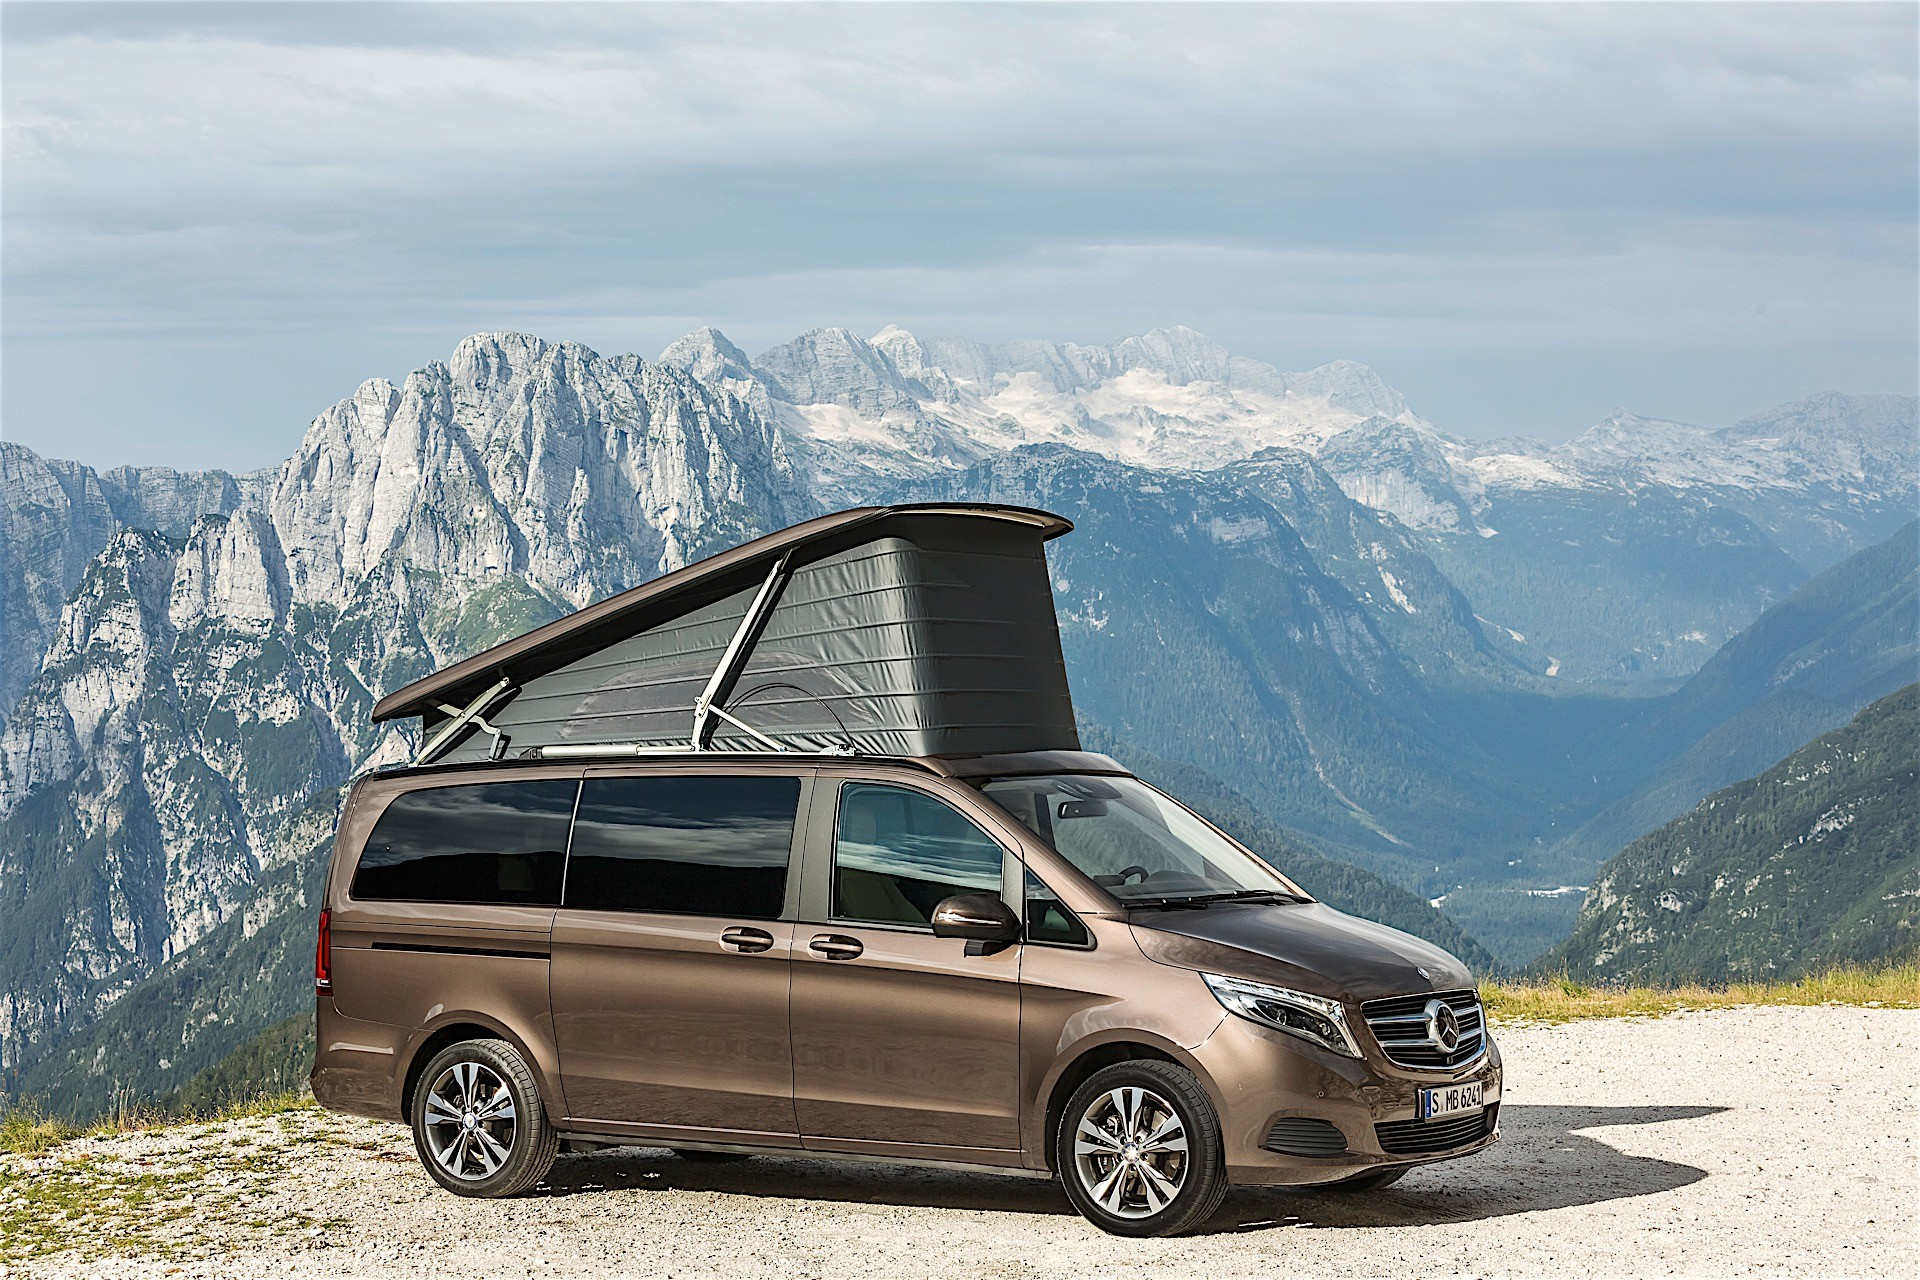 Mercedes benz unveils exhibits for 2016 caravan salon for Mercedes benz caravan